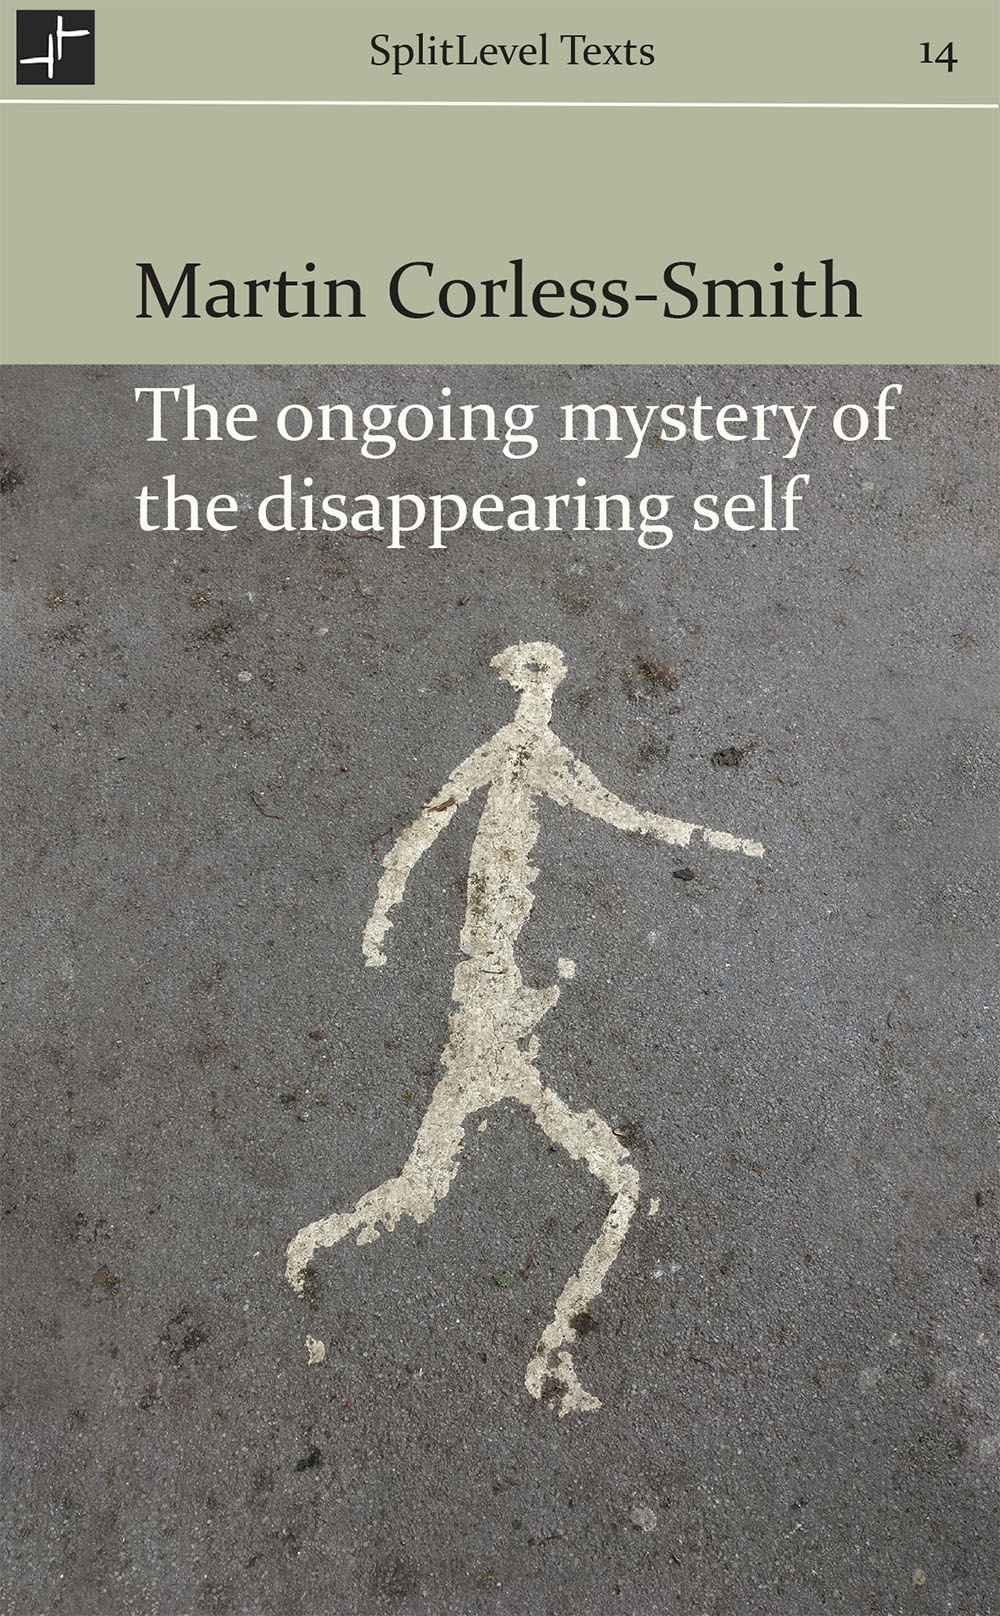 The ongoing mystery of the disappearing self